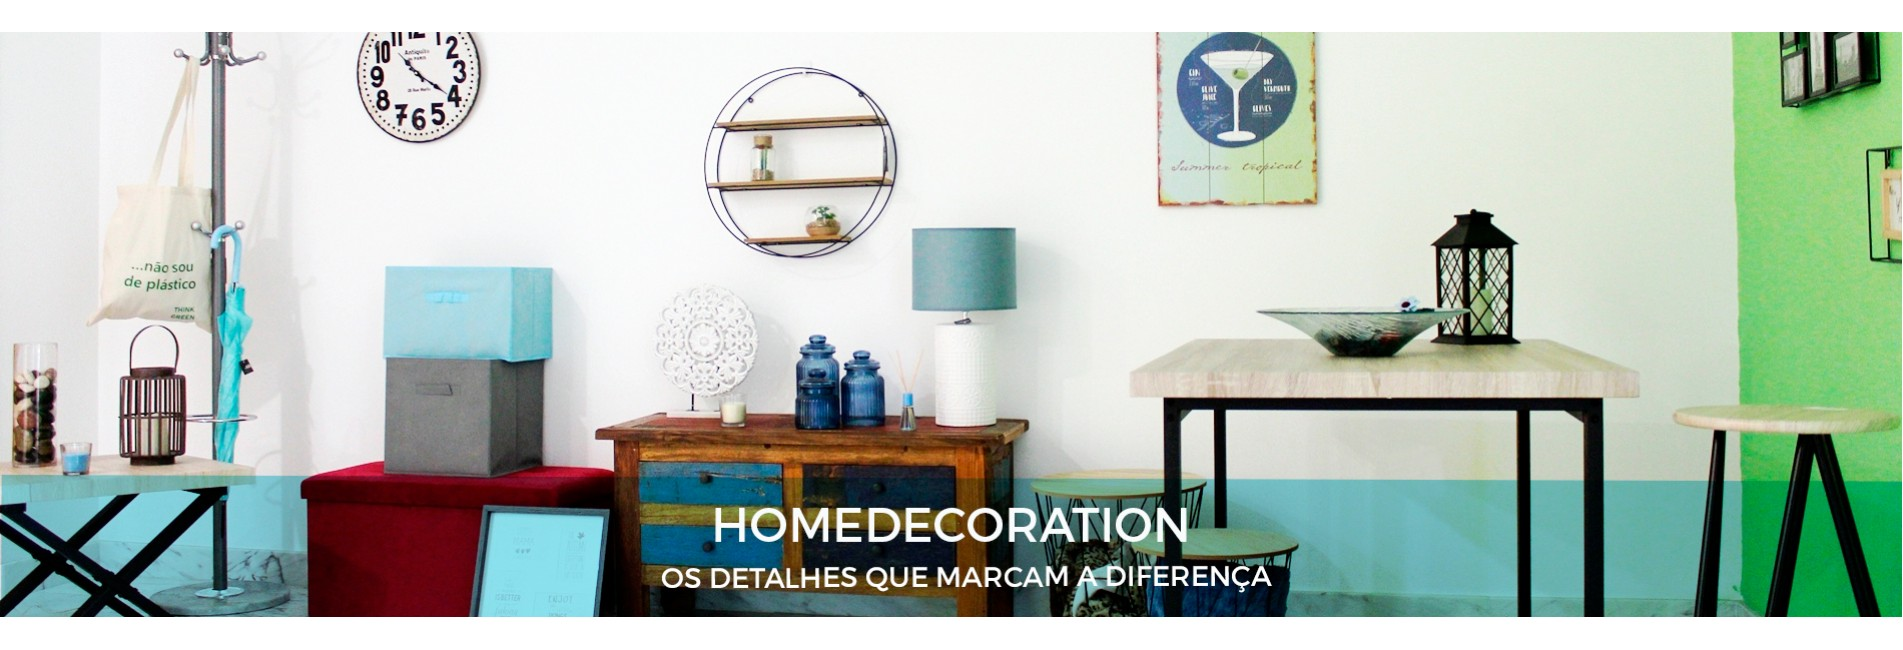 MSM HomeDecoration